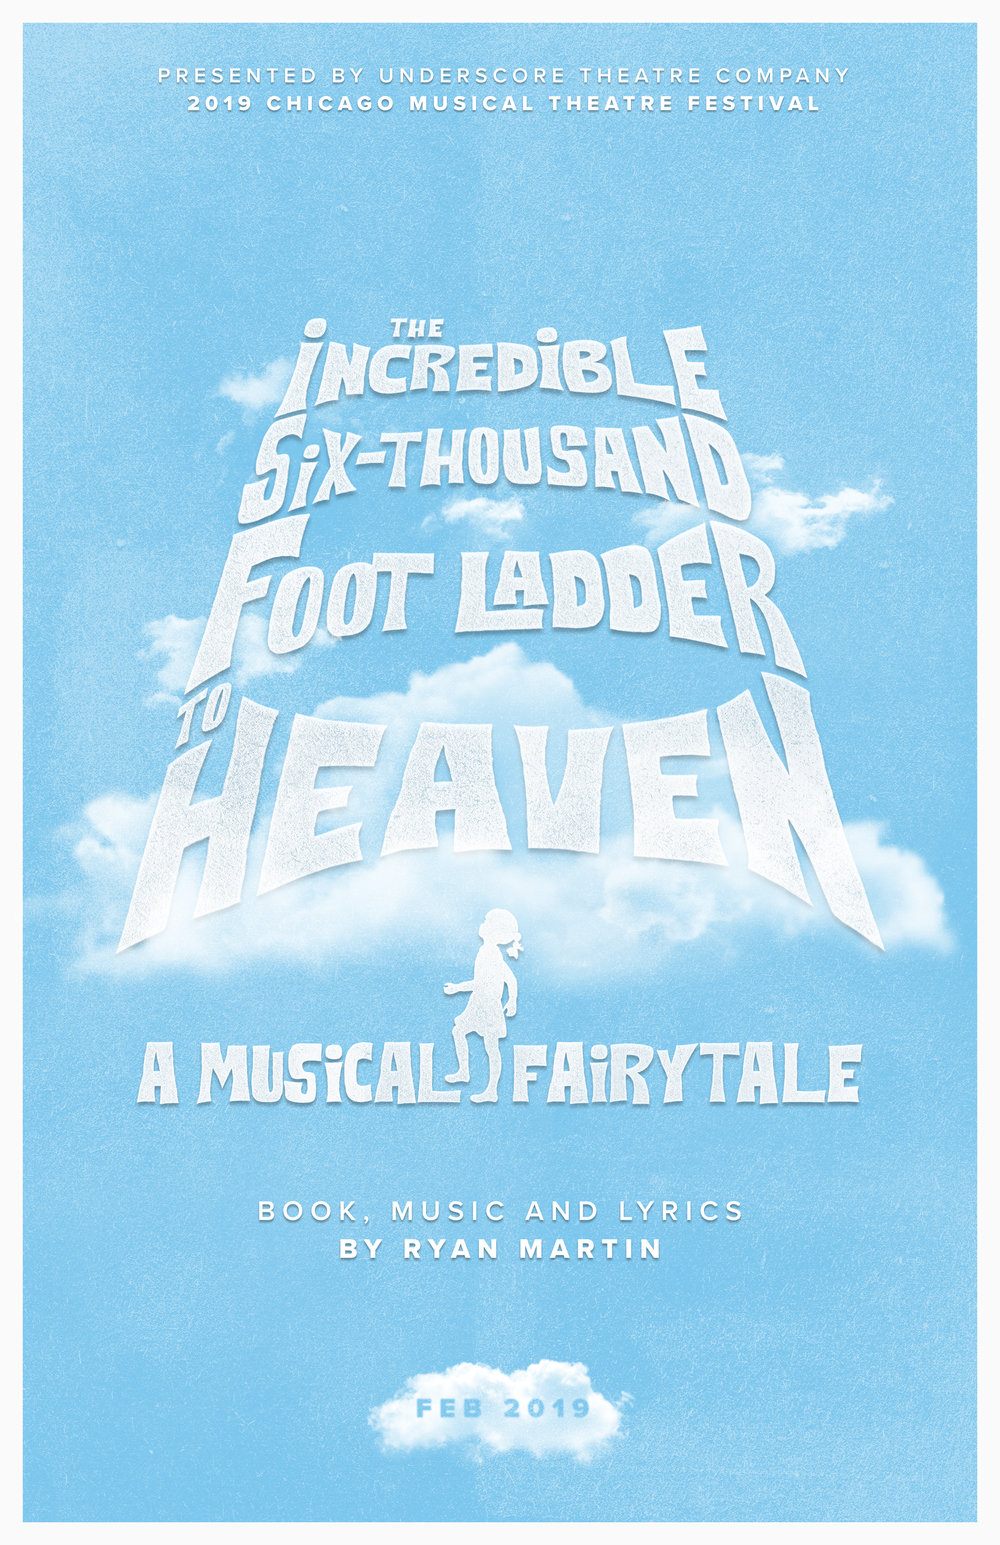 The Incredible Six-Thousand Foot Ladder to Heaven